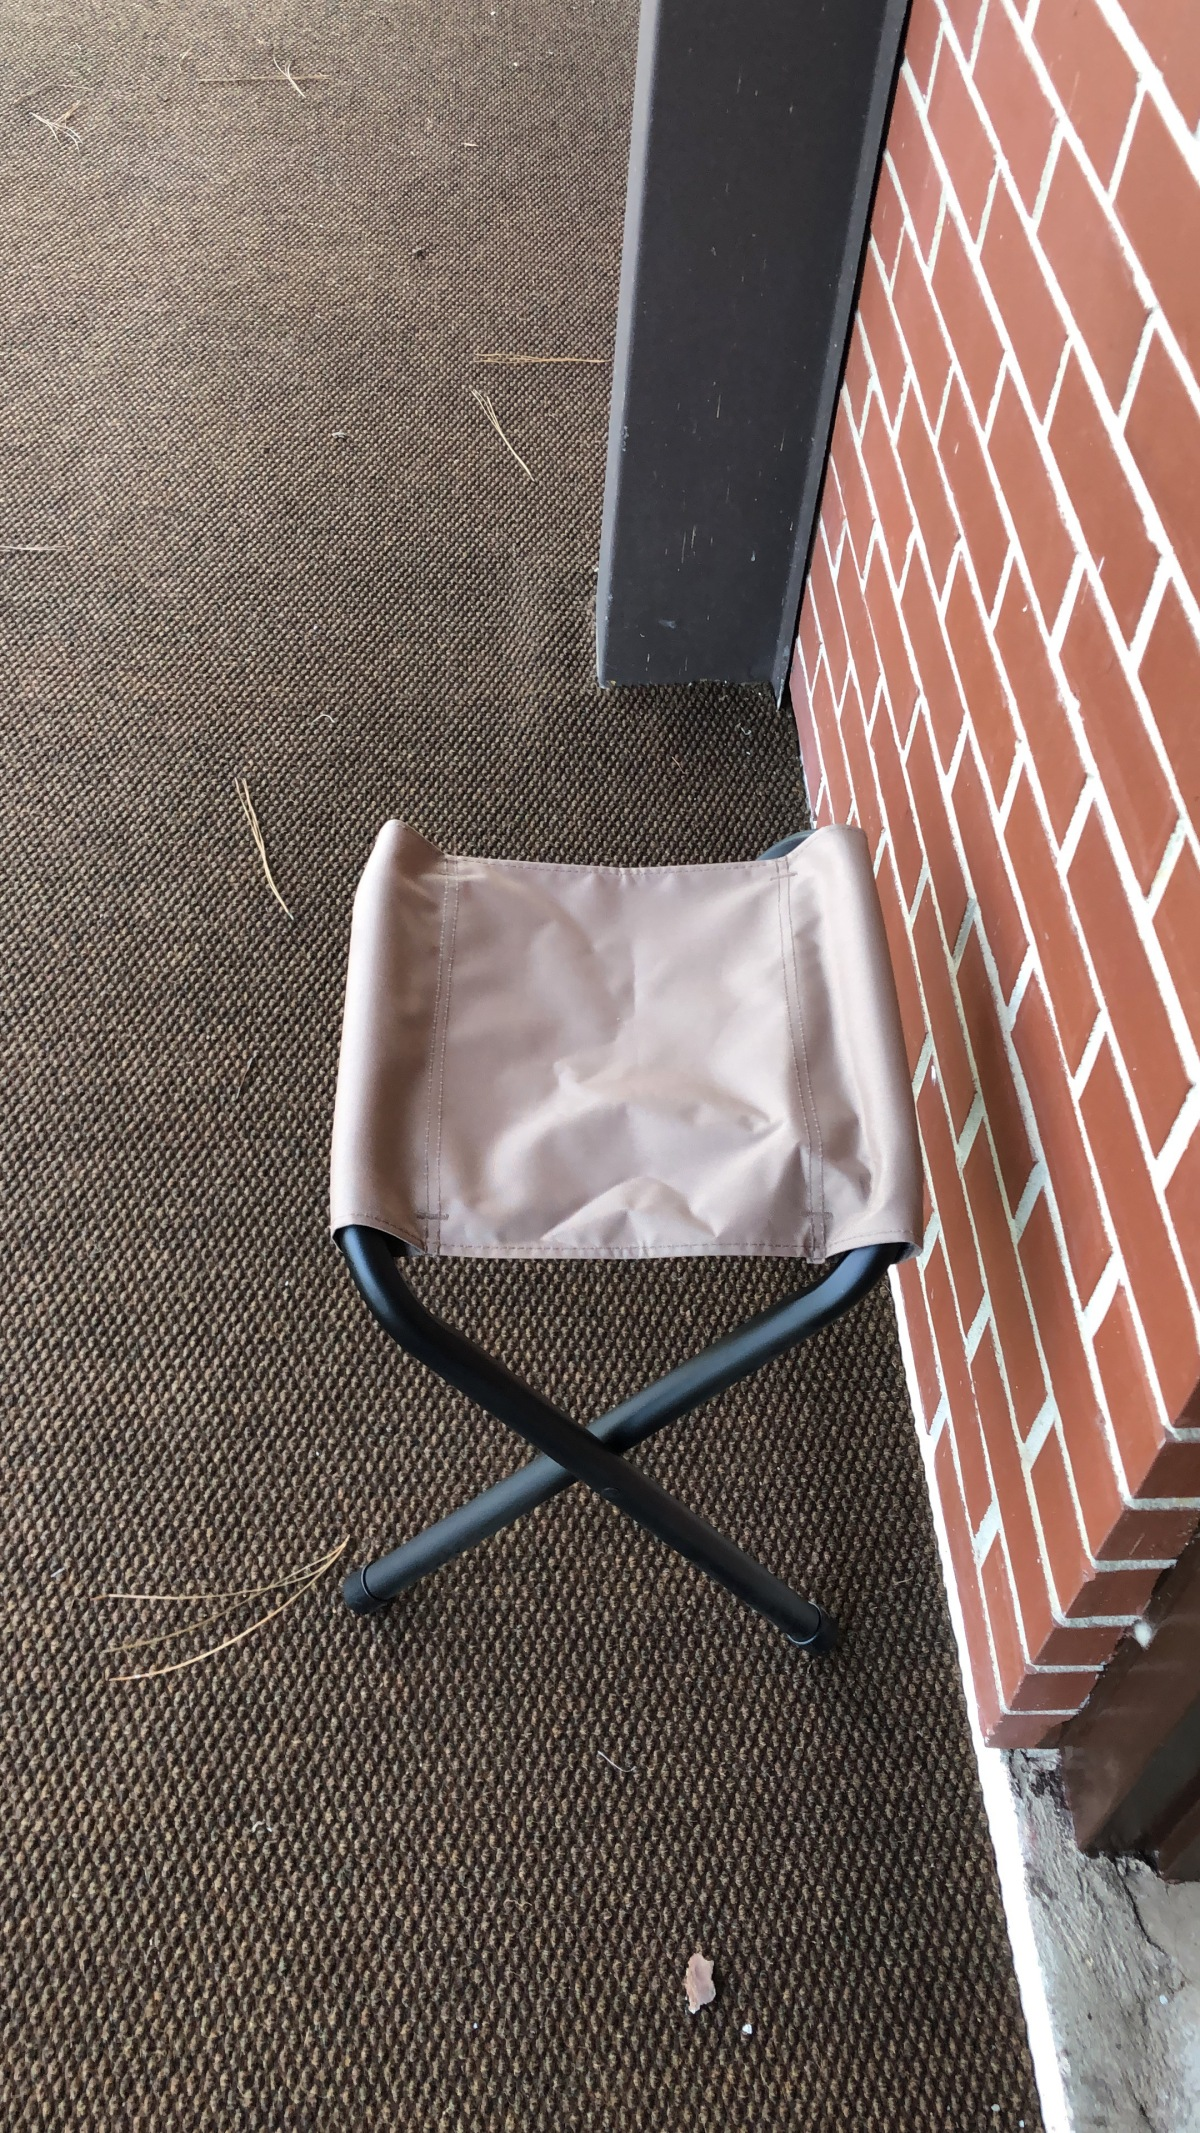 My self purchased chair for mission support